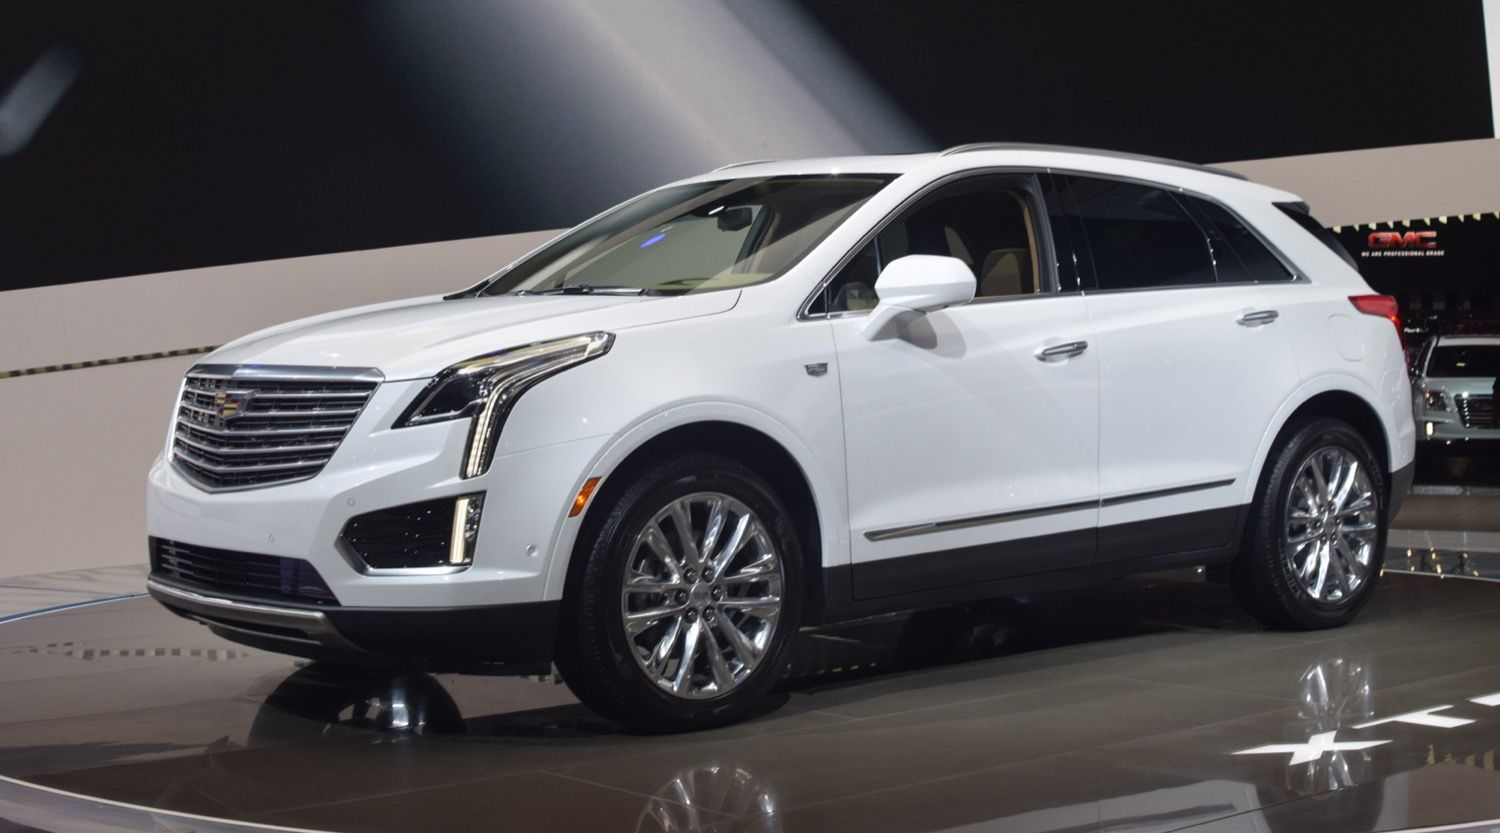 2017 cadillac srx changes release review http futurecarrelease net